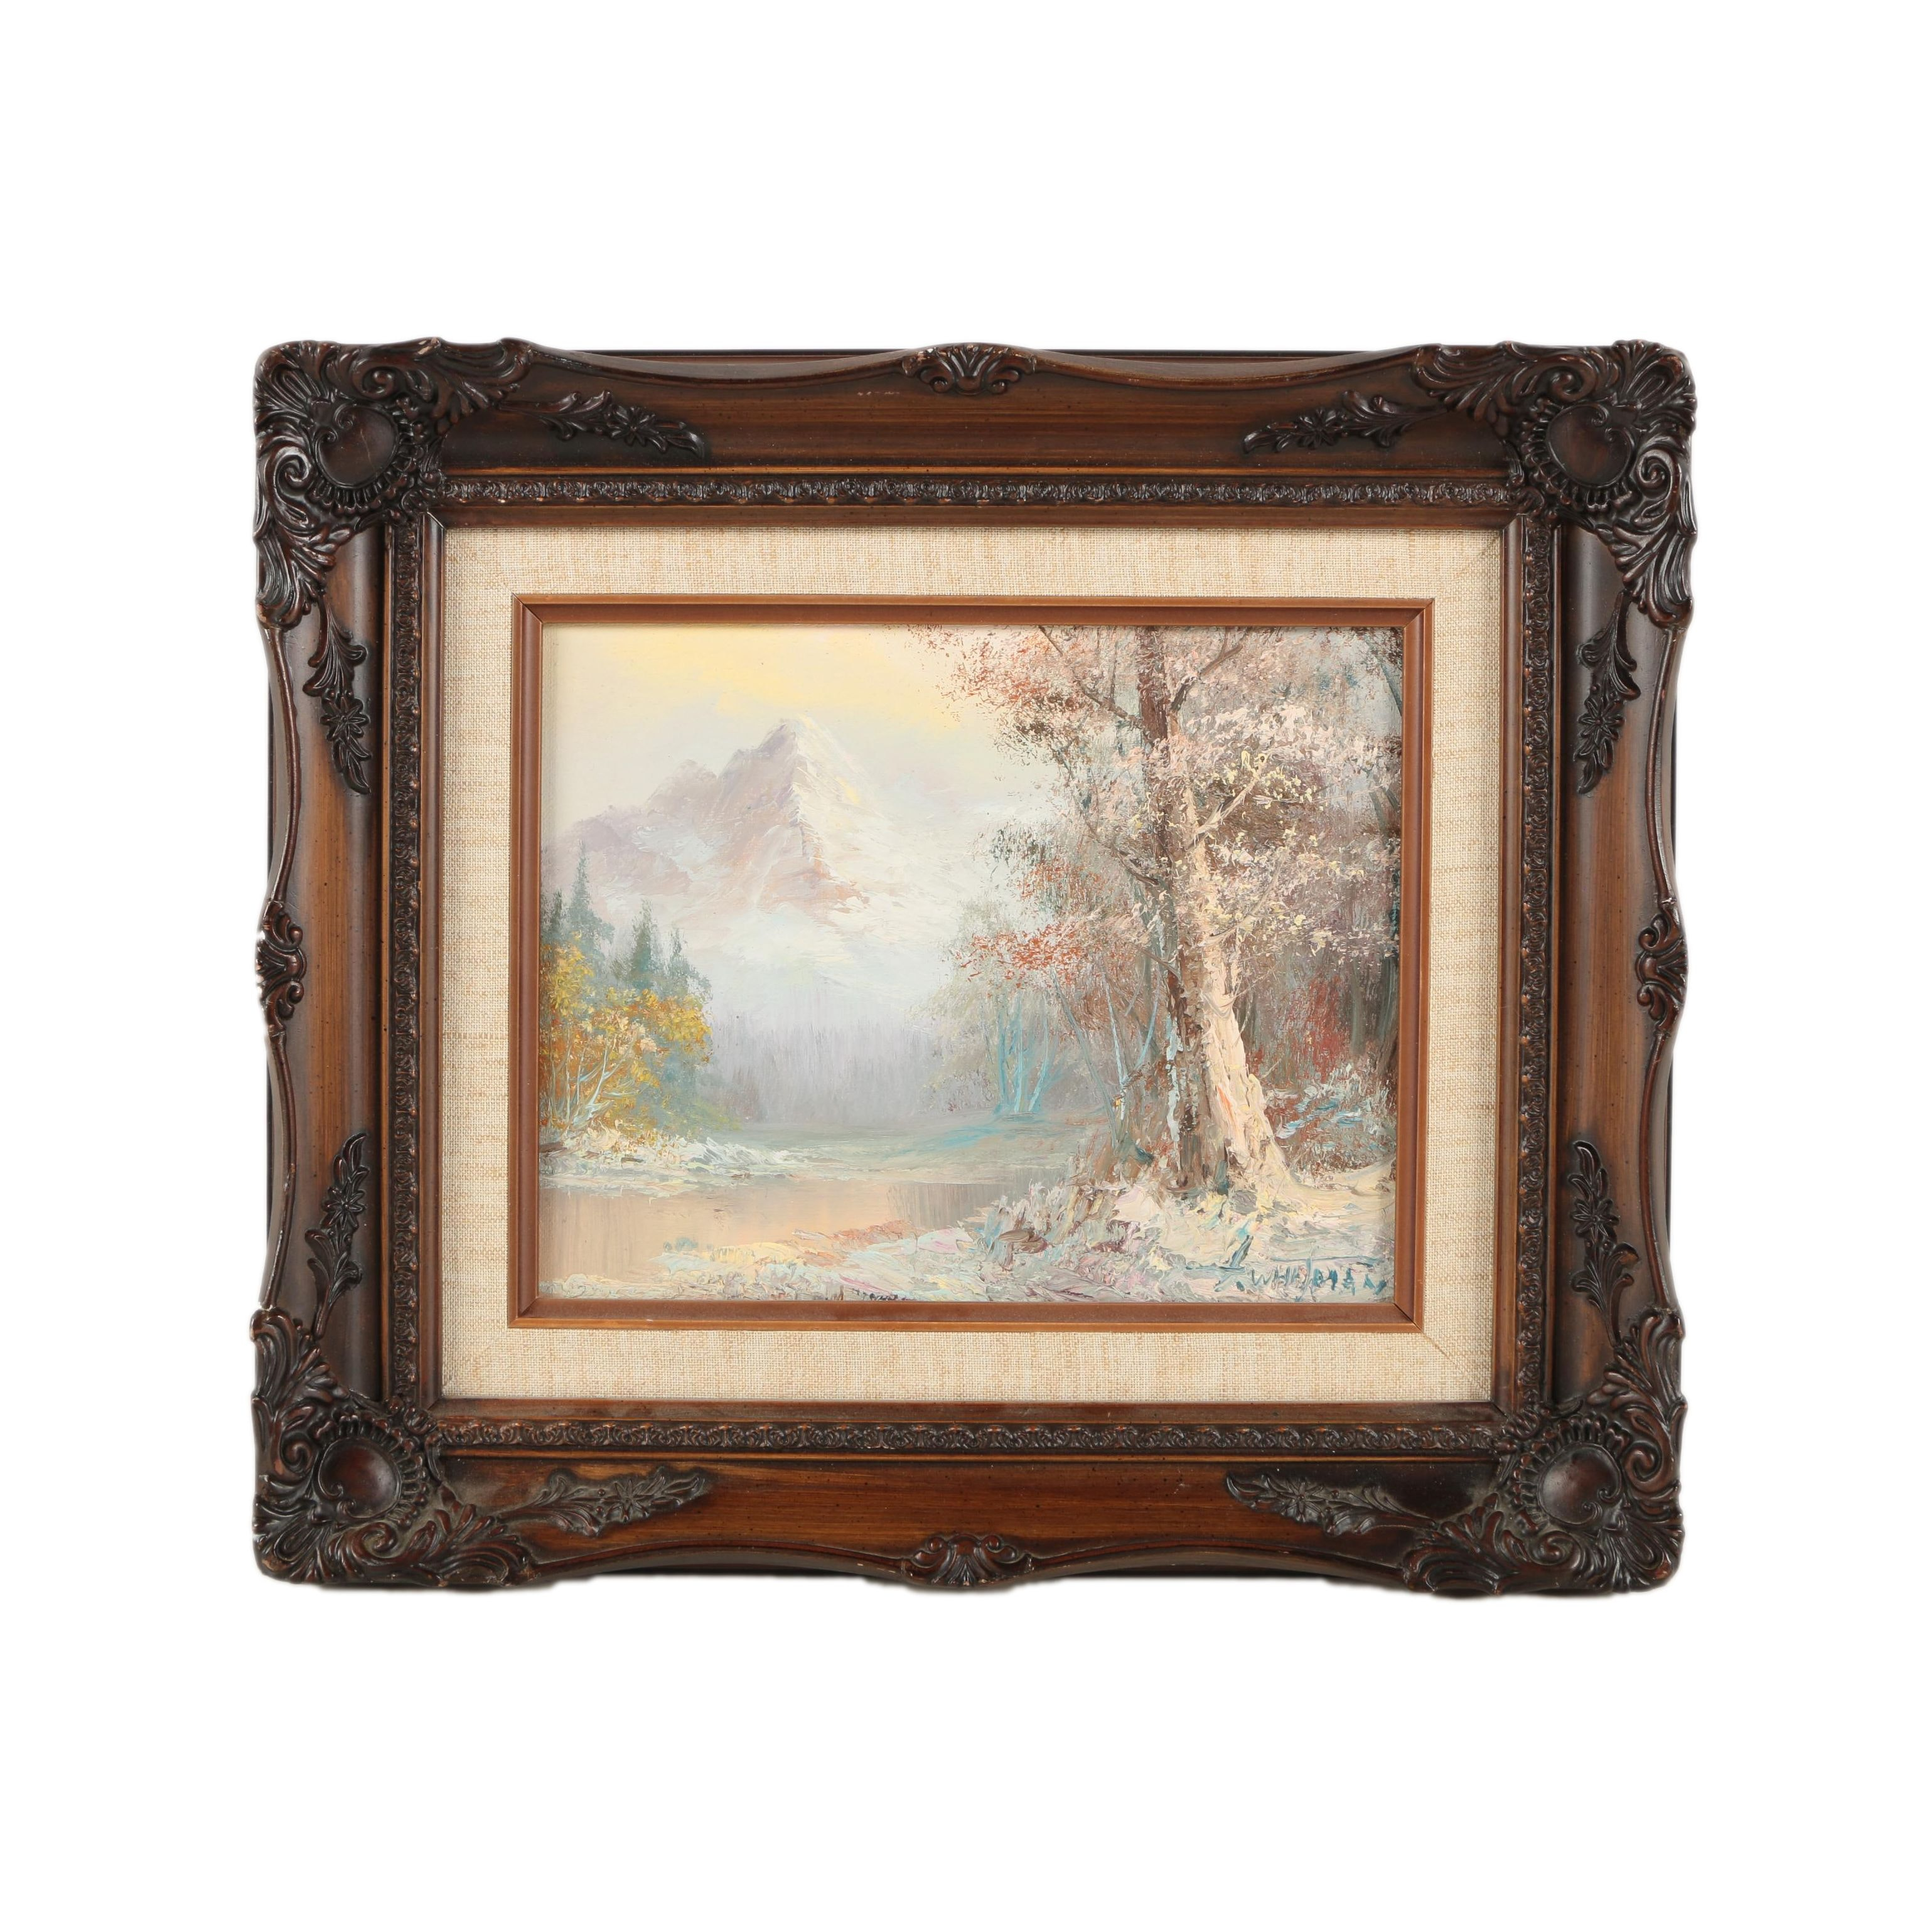 G. Whitman Oil Painting on Canvas Landscape